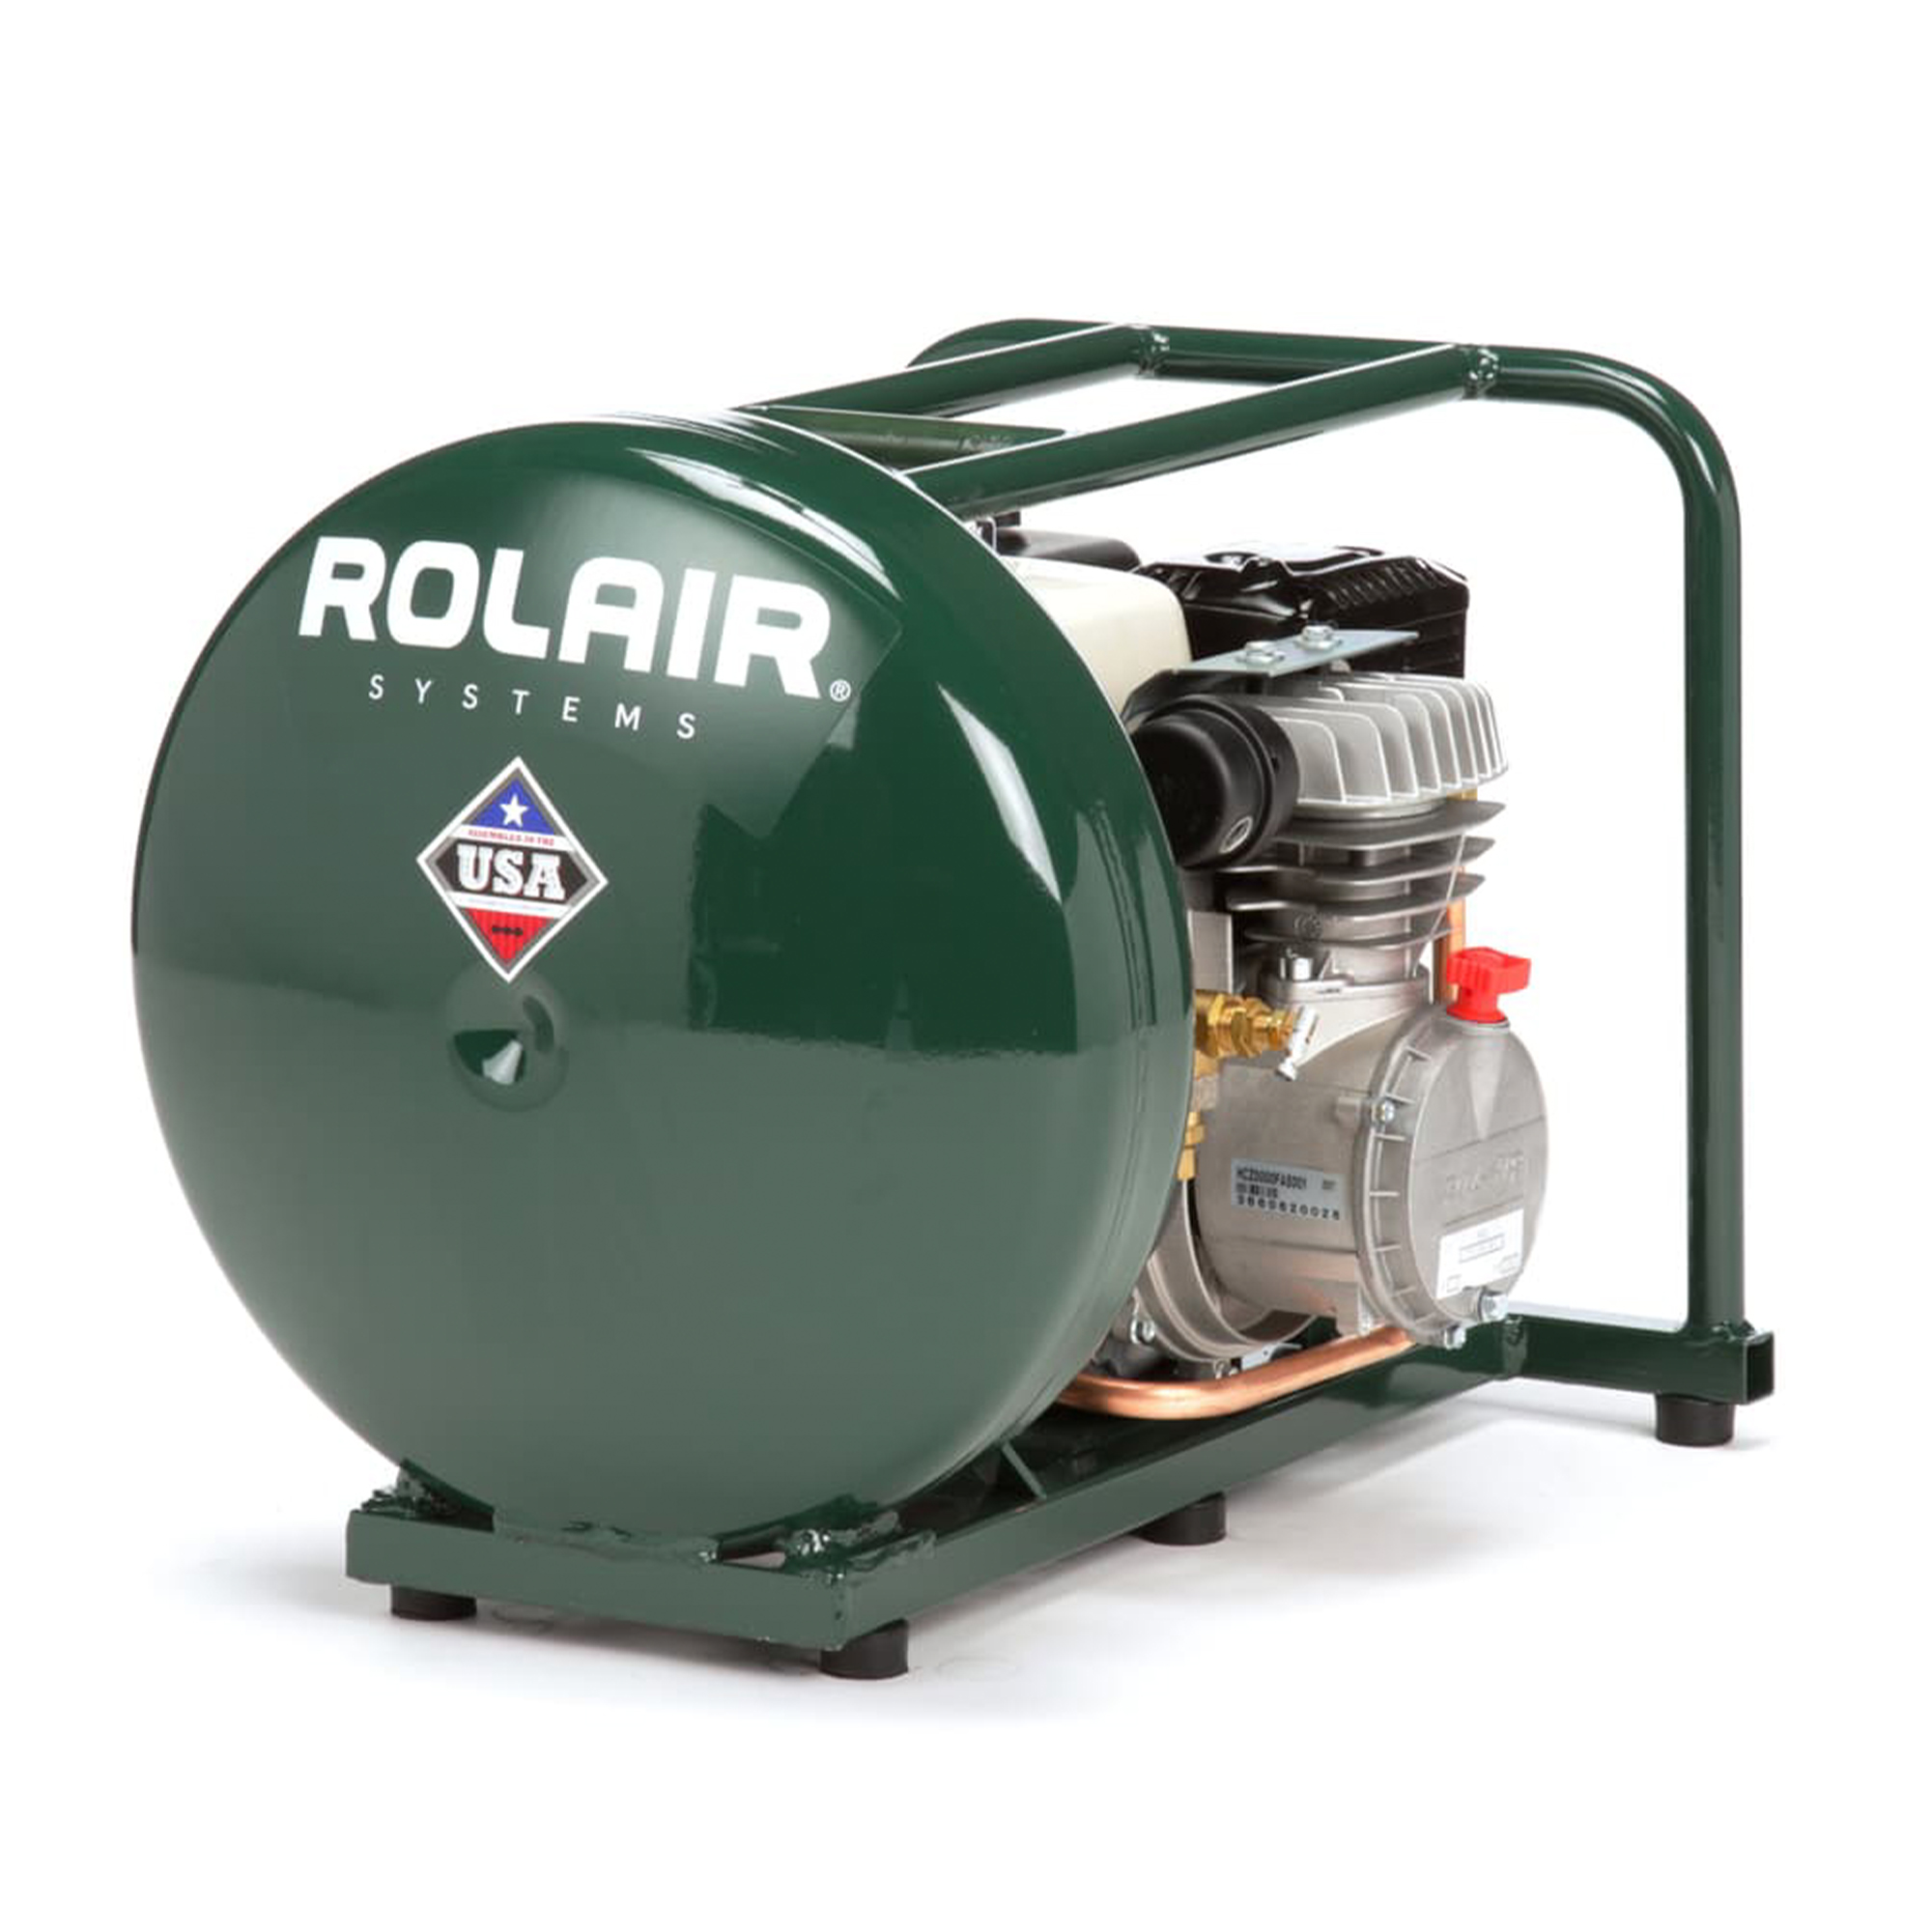 Rolair GD4000PV5H 4.5 Gallon Gas Powered Cordless Small Portable Air Compressor